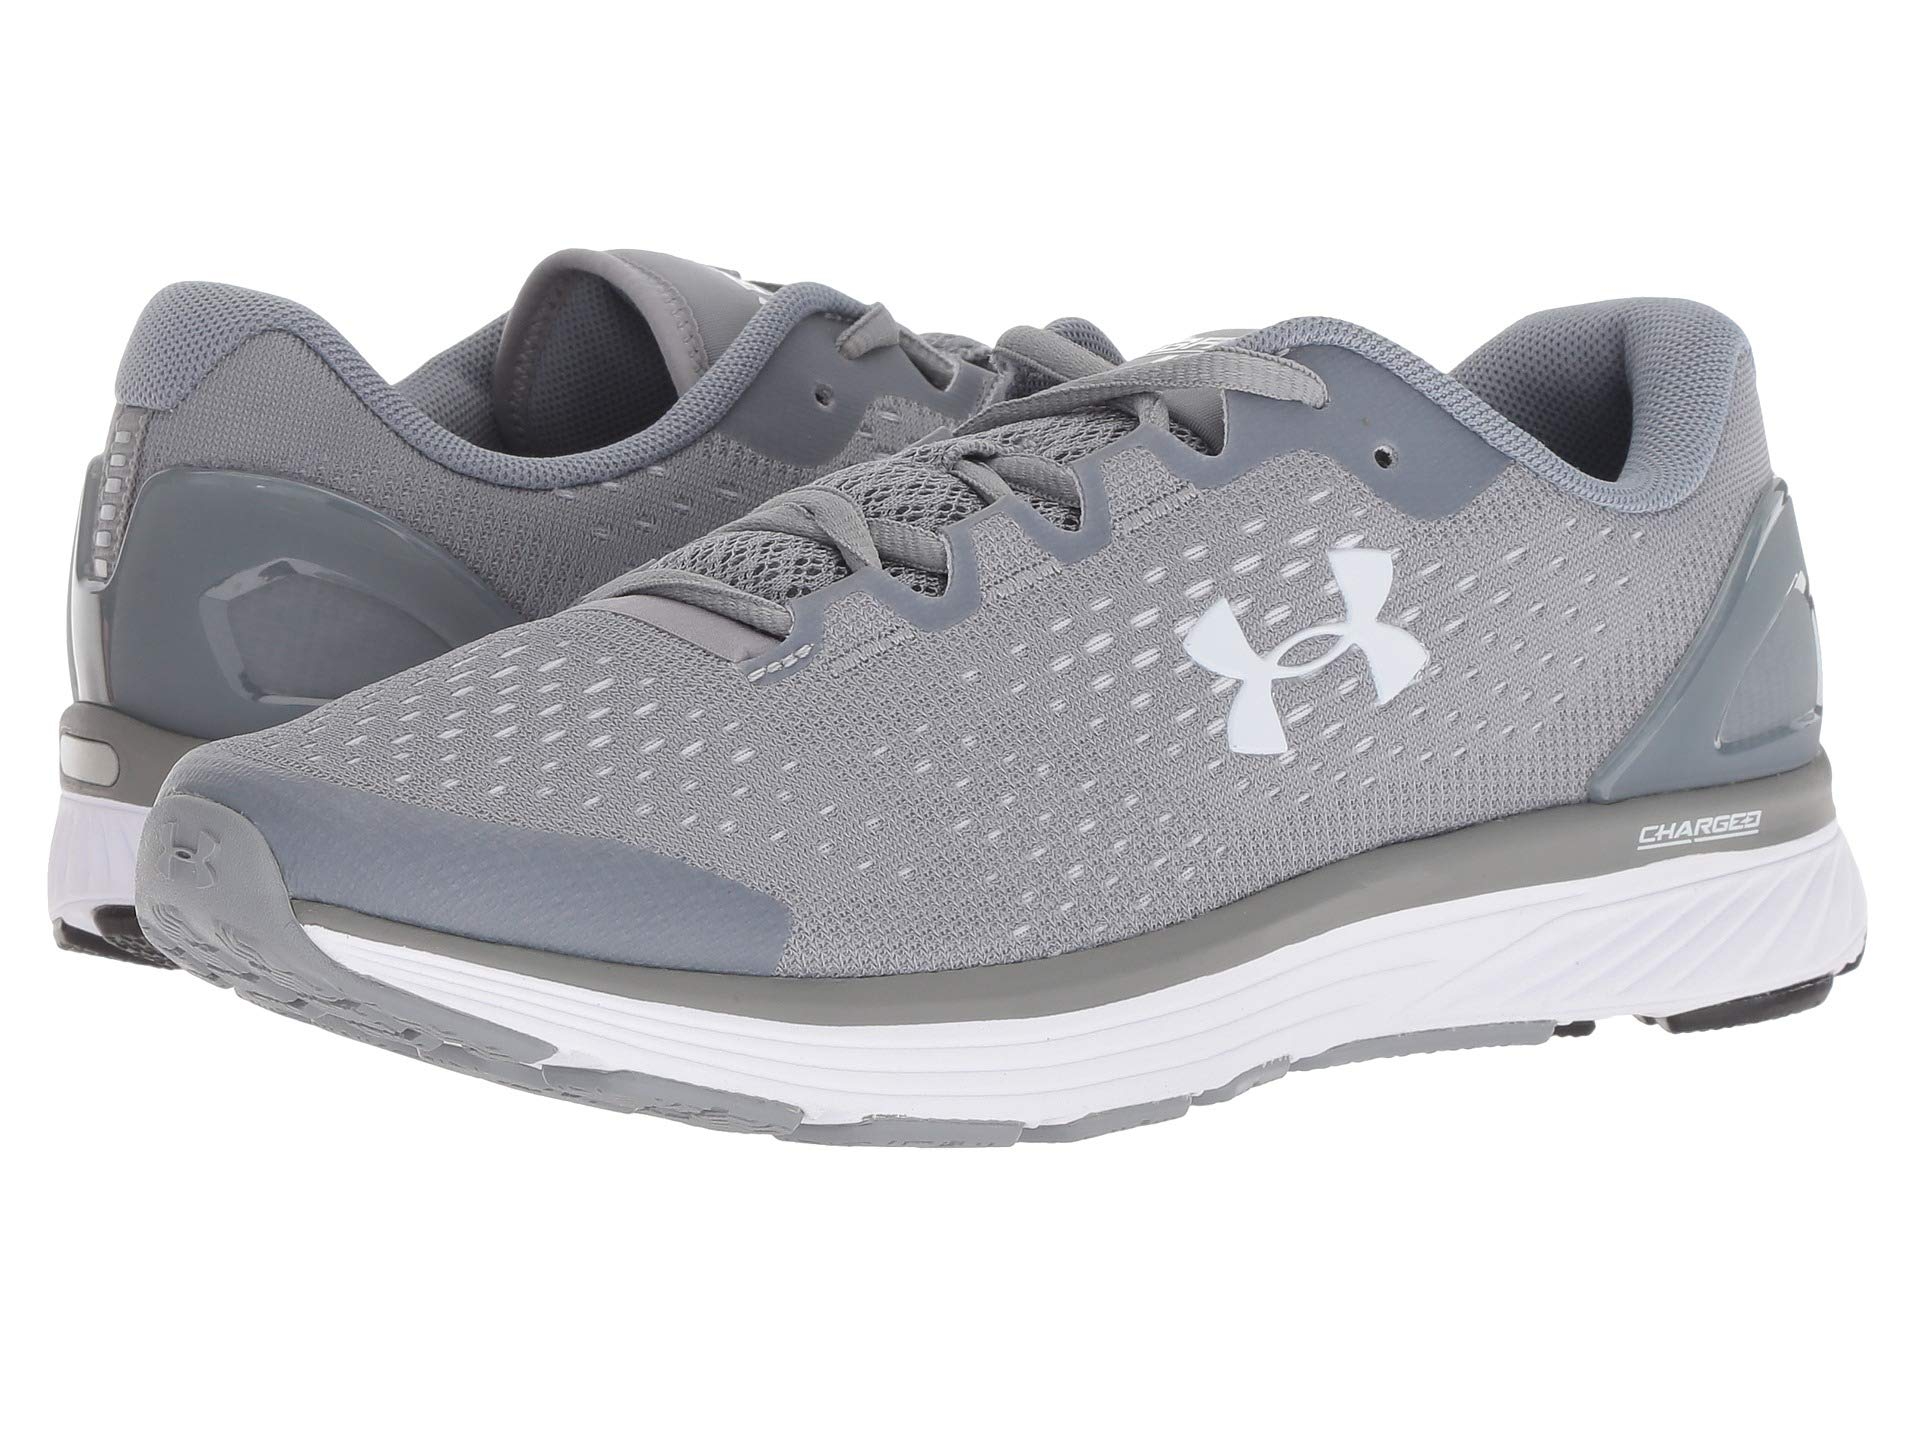 sale retailer b5df9 5f4c2 Under Armour UA Charged Bandit 4 Team - Steel/Steel/White / 5